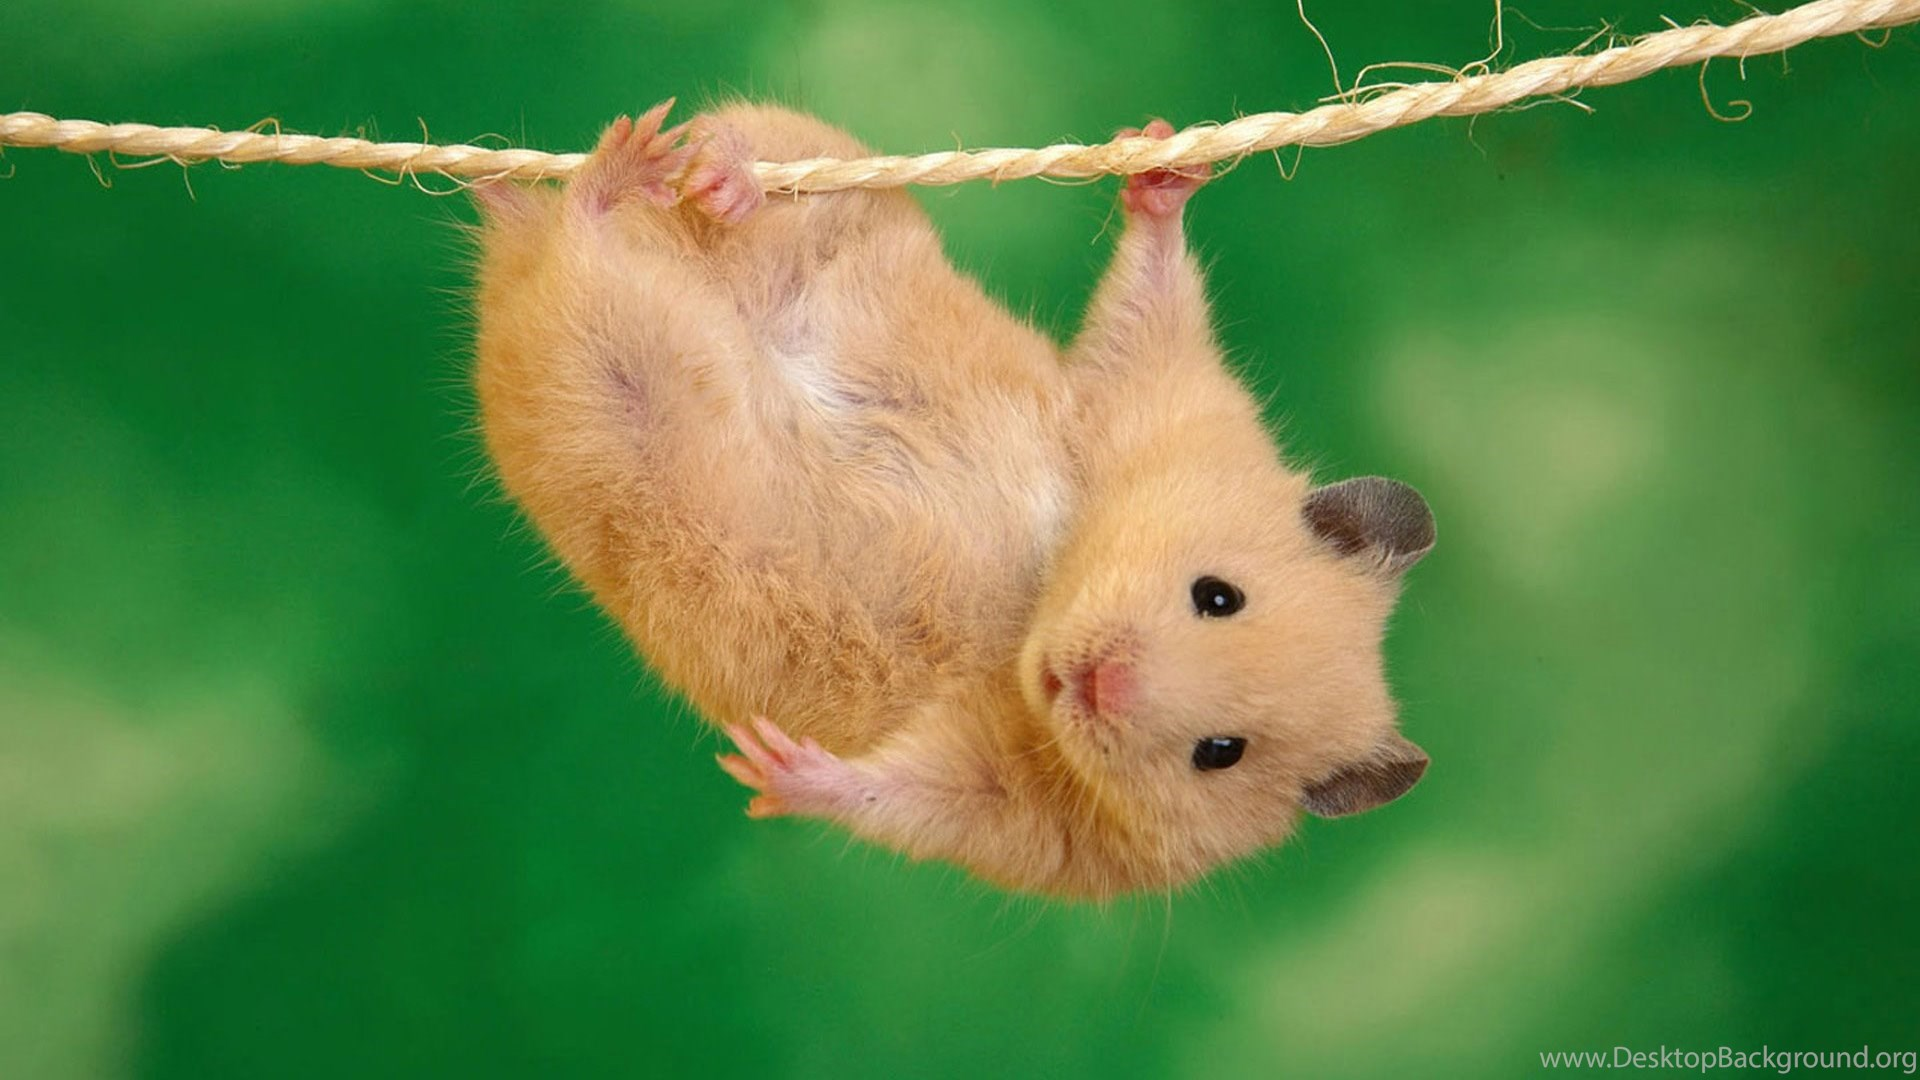 hamsters interesting wallpaper, hd desktop wallpapers desktop background